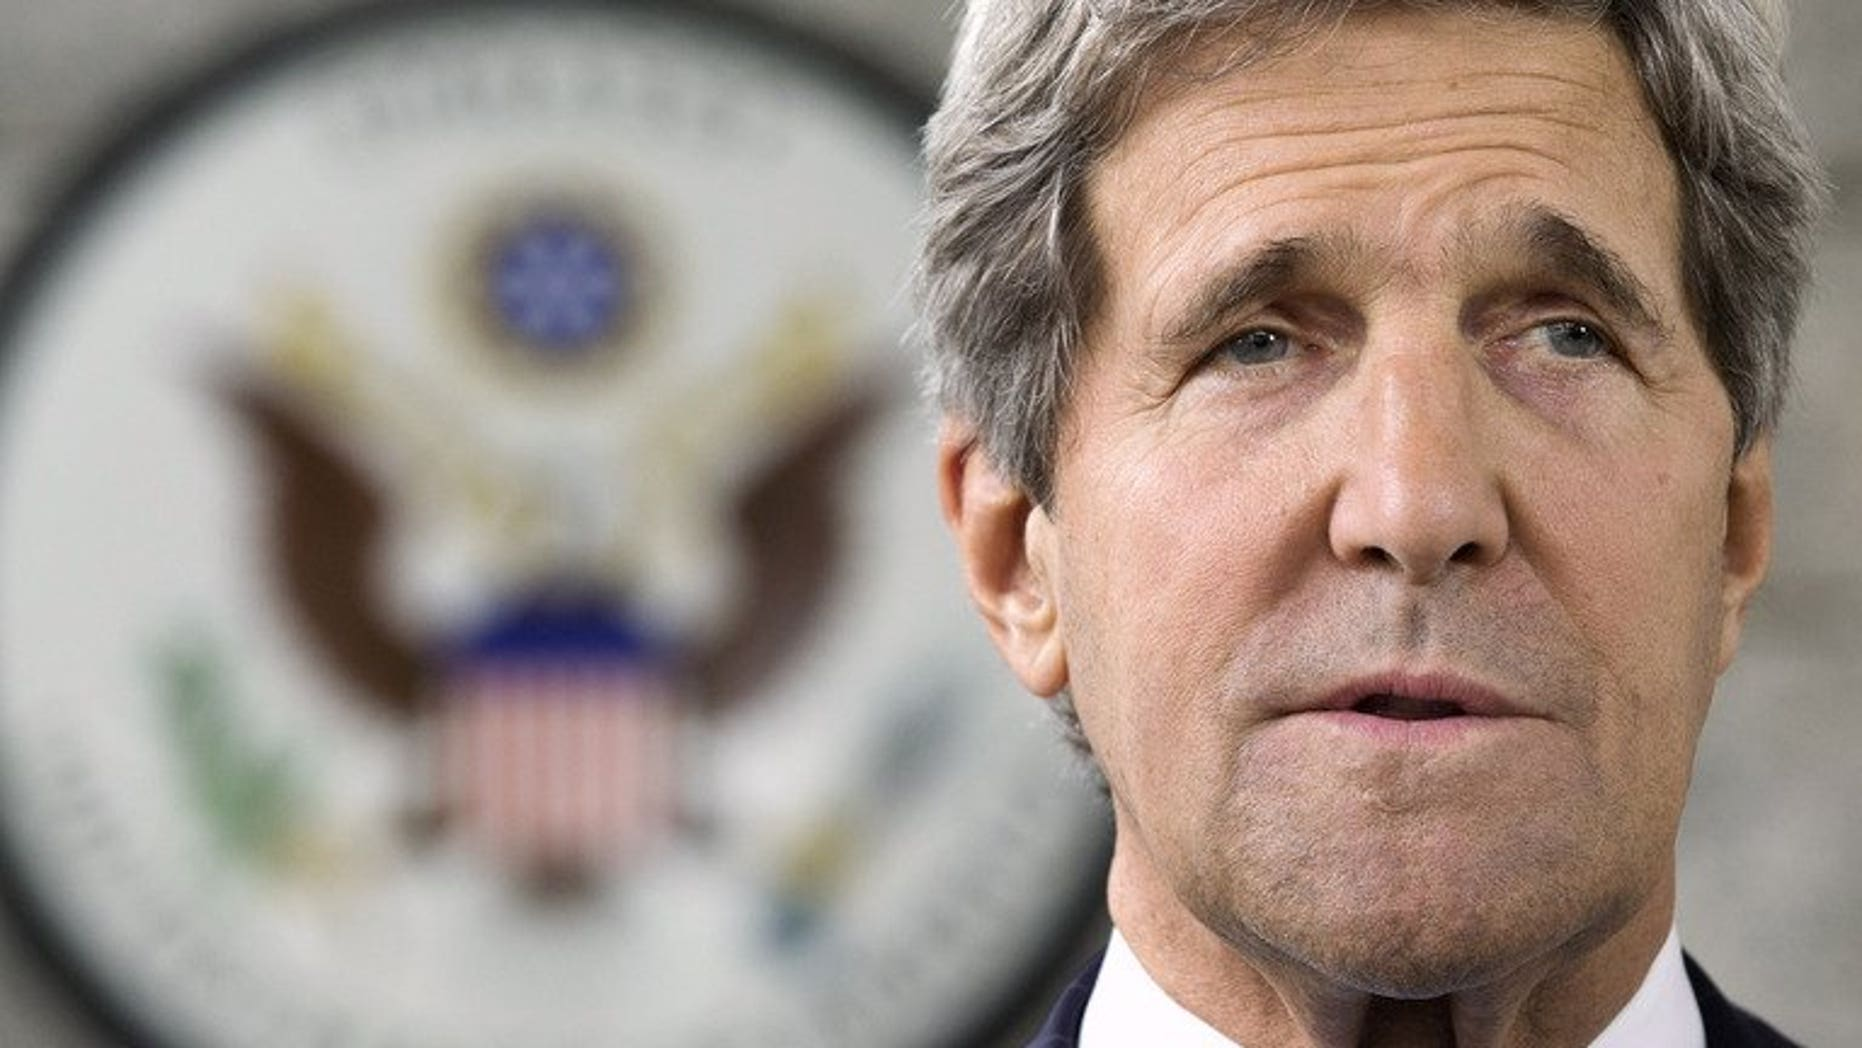 US Secretary of State John Kerry makes a statement to the press at the US Embassy in Bandar Seri Begawan on July 2, 2013. Kerry will return to the Middle East this week to push for Israel-Palestinian peace talks and will meet Mahmud Abbas.